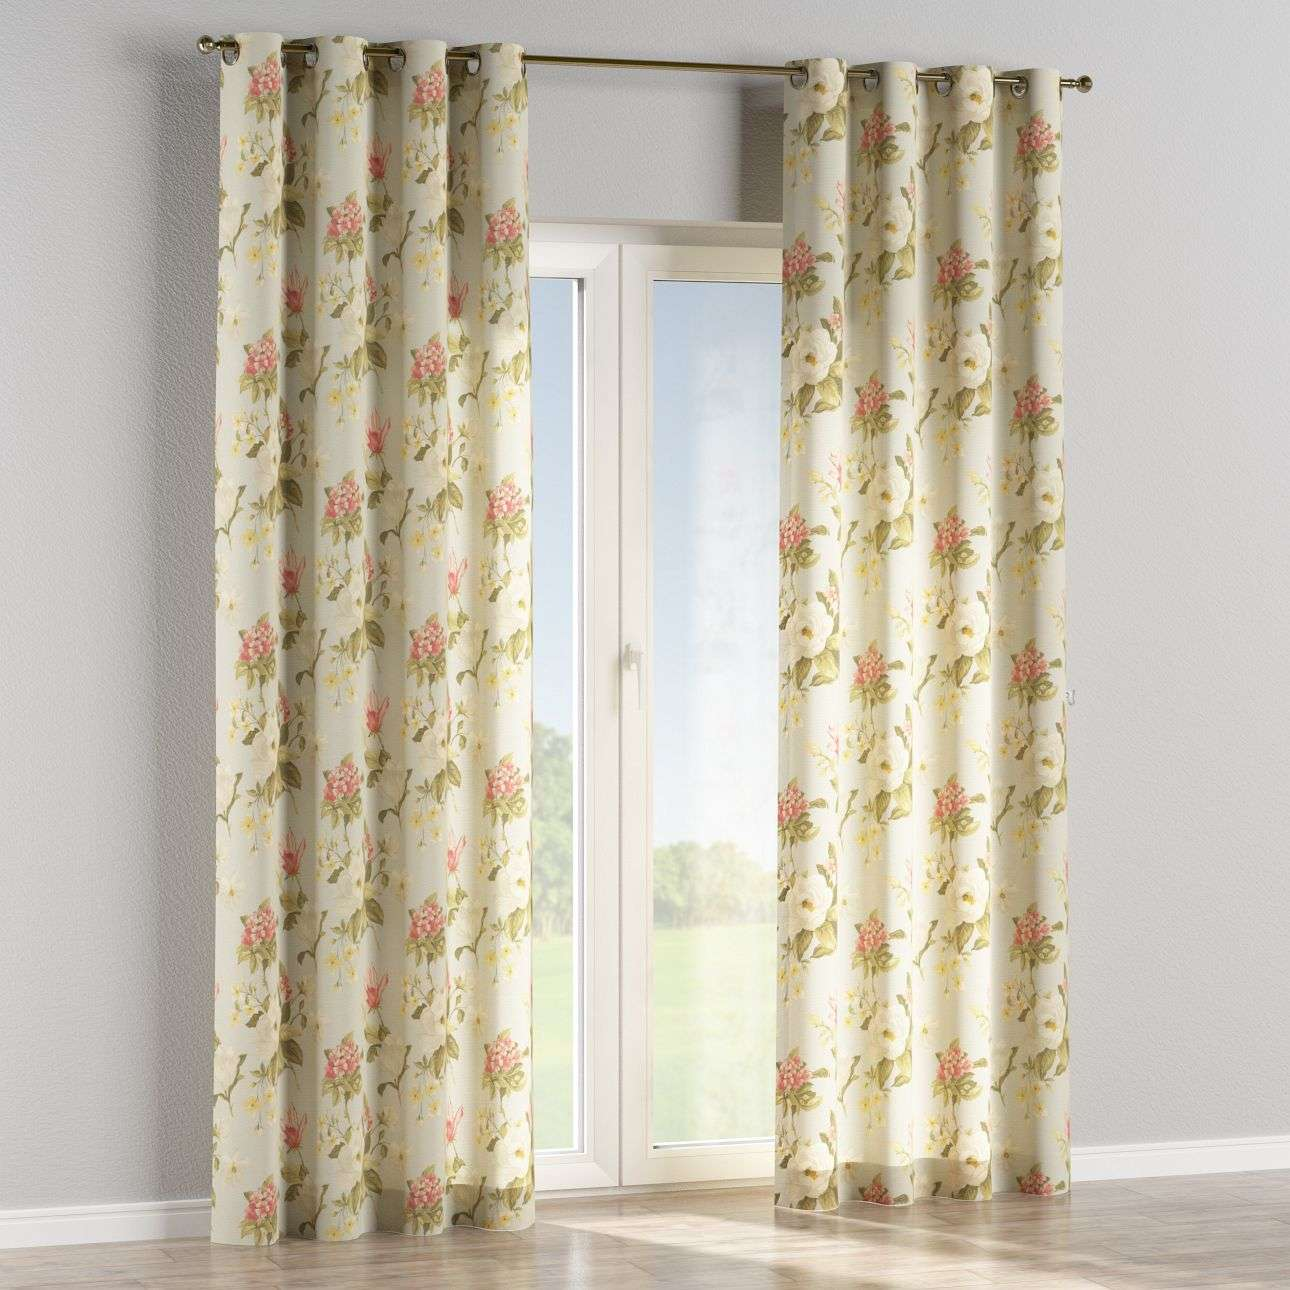 Eyelet curtains 130 x 260 cm (51 x 102 inch) in collection Londres, fabric: 123-65